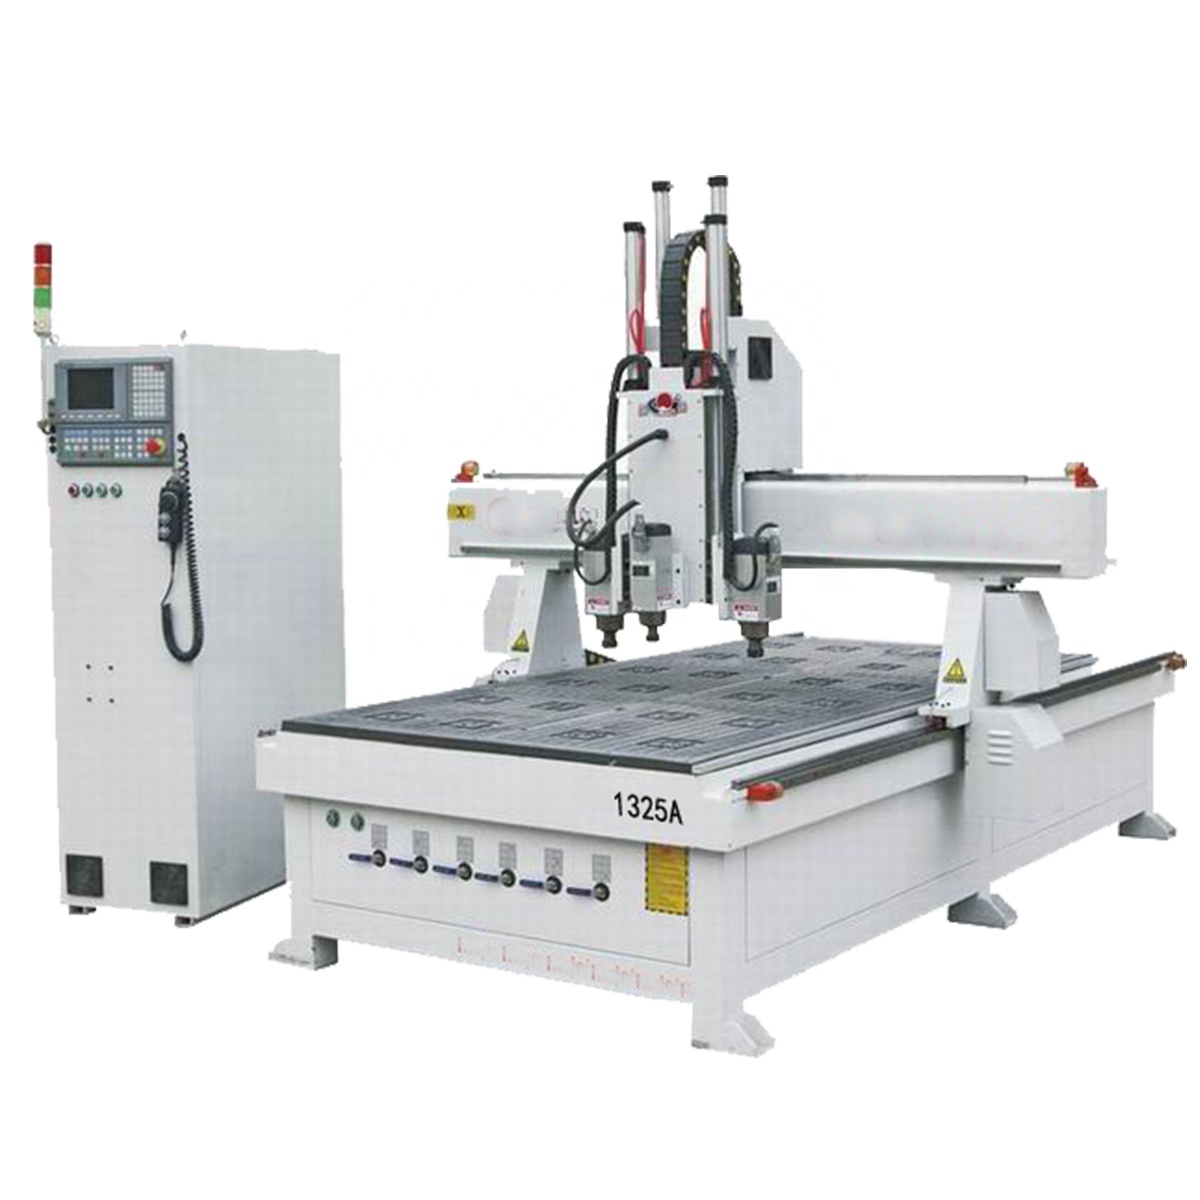 3 Axis ATC 3D Wood CNC Router Machine